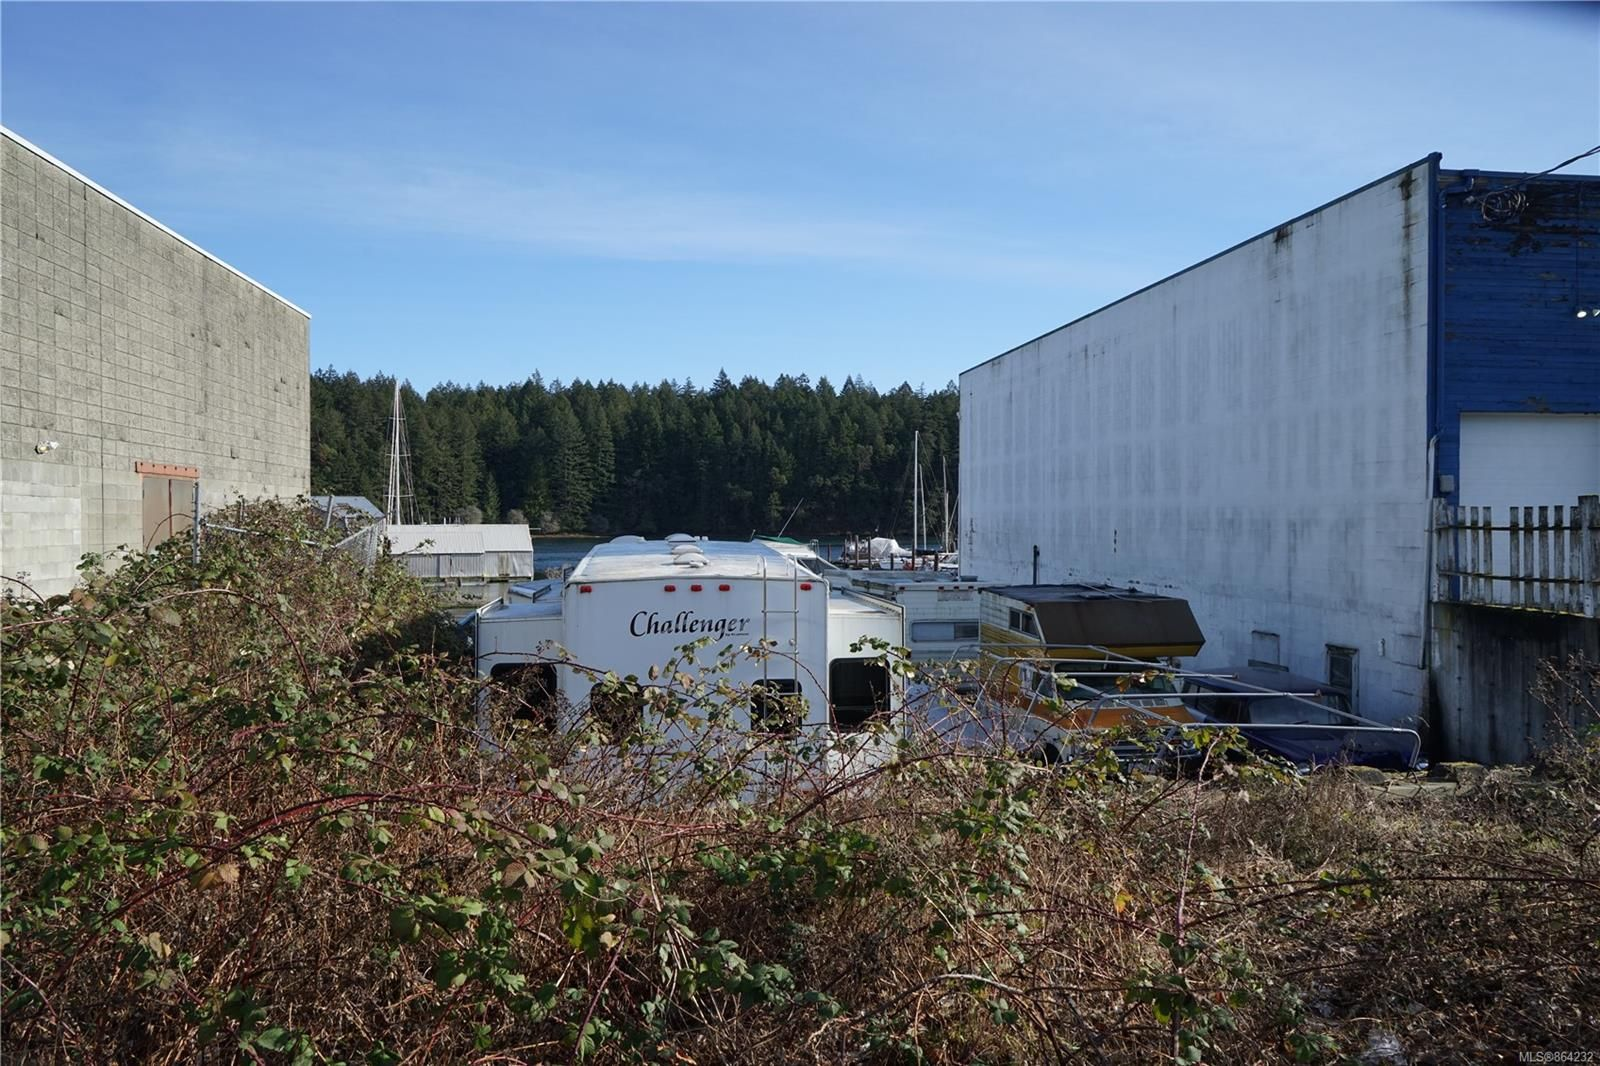 Photo 6: Photos: 1340-1370 Stewart Ave in : Na Brechin Hill Mixed Use for sale (Nanaimo)  : MLS®# 864232